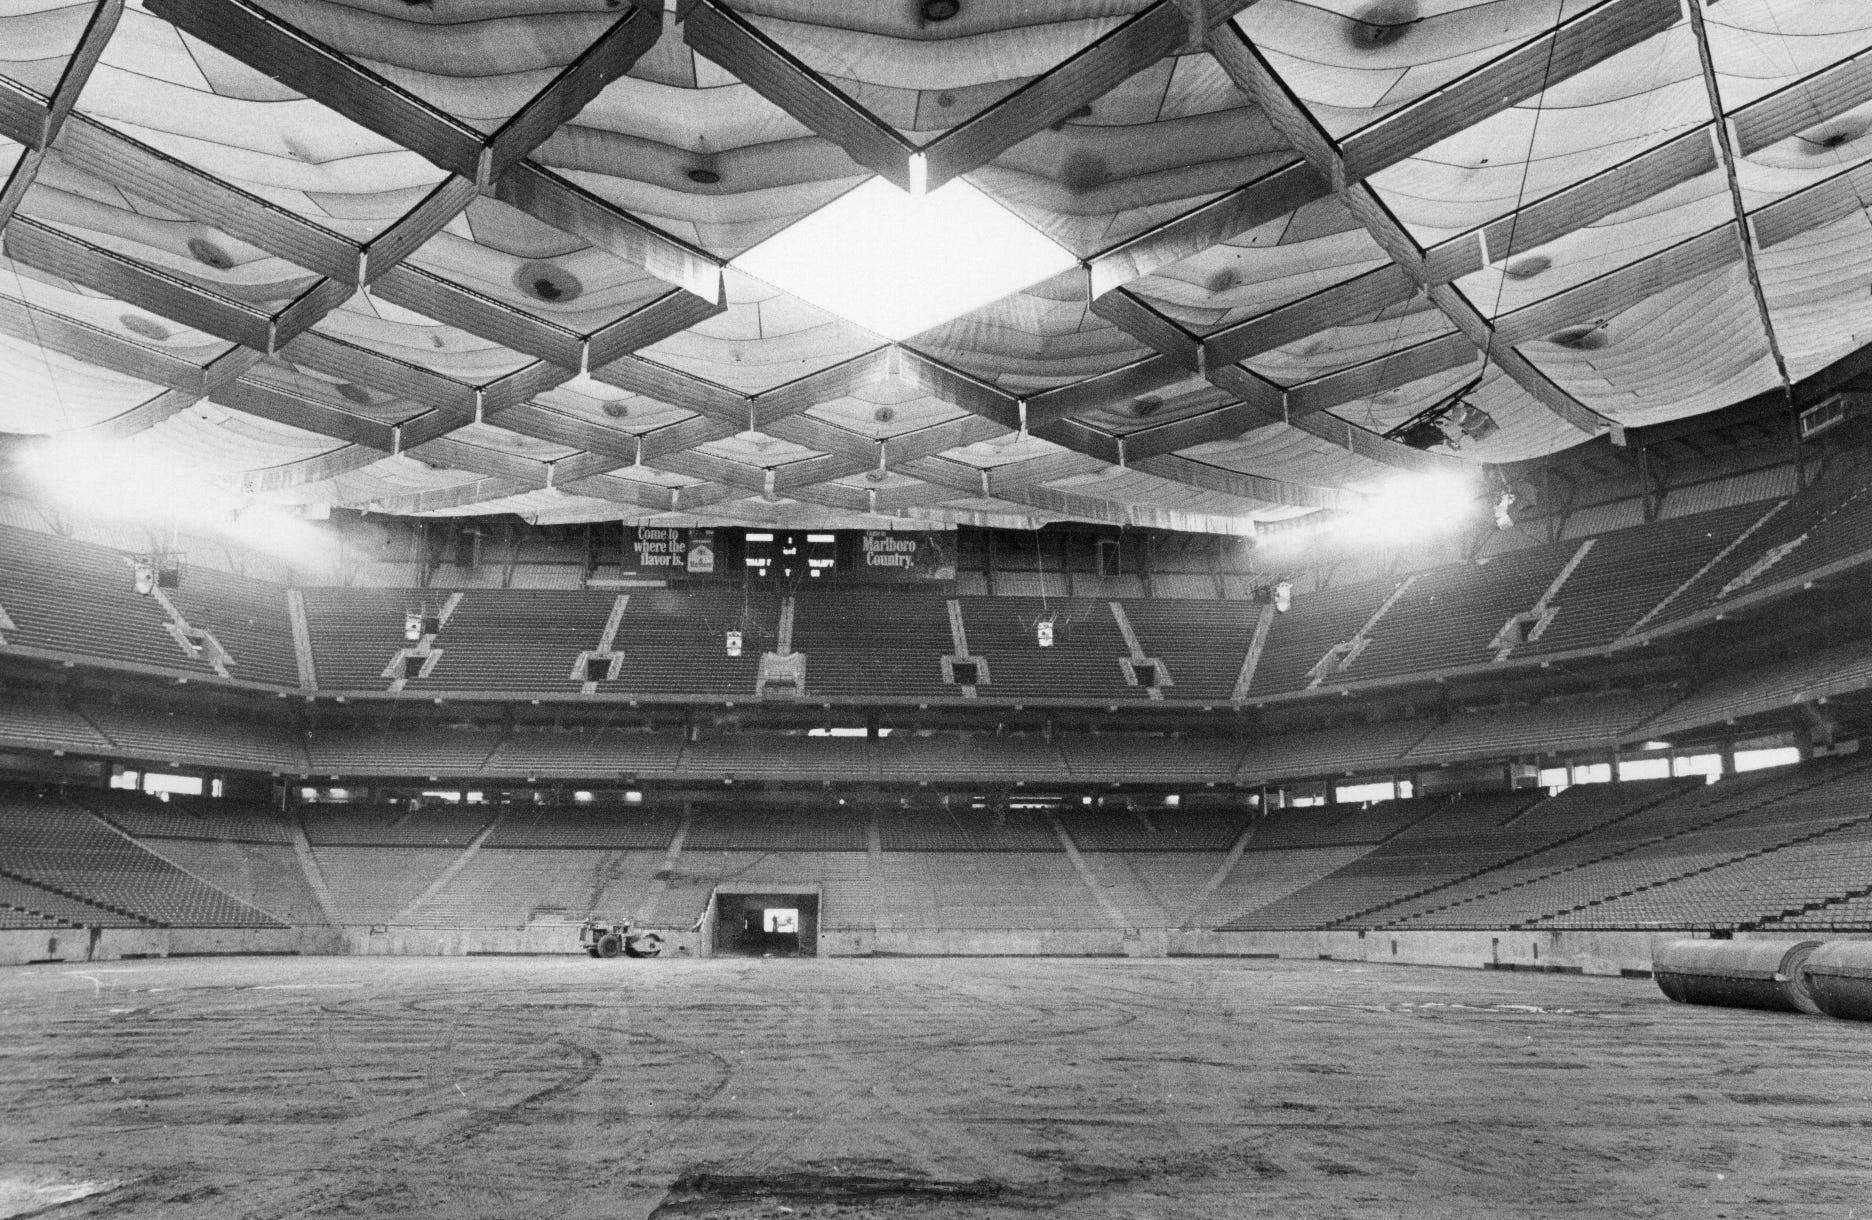 The last panel is waiting to be installed in the Silverdome